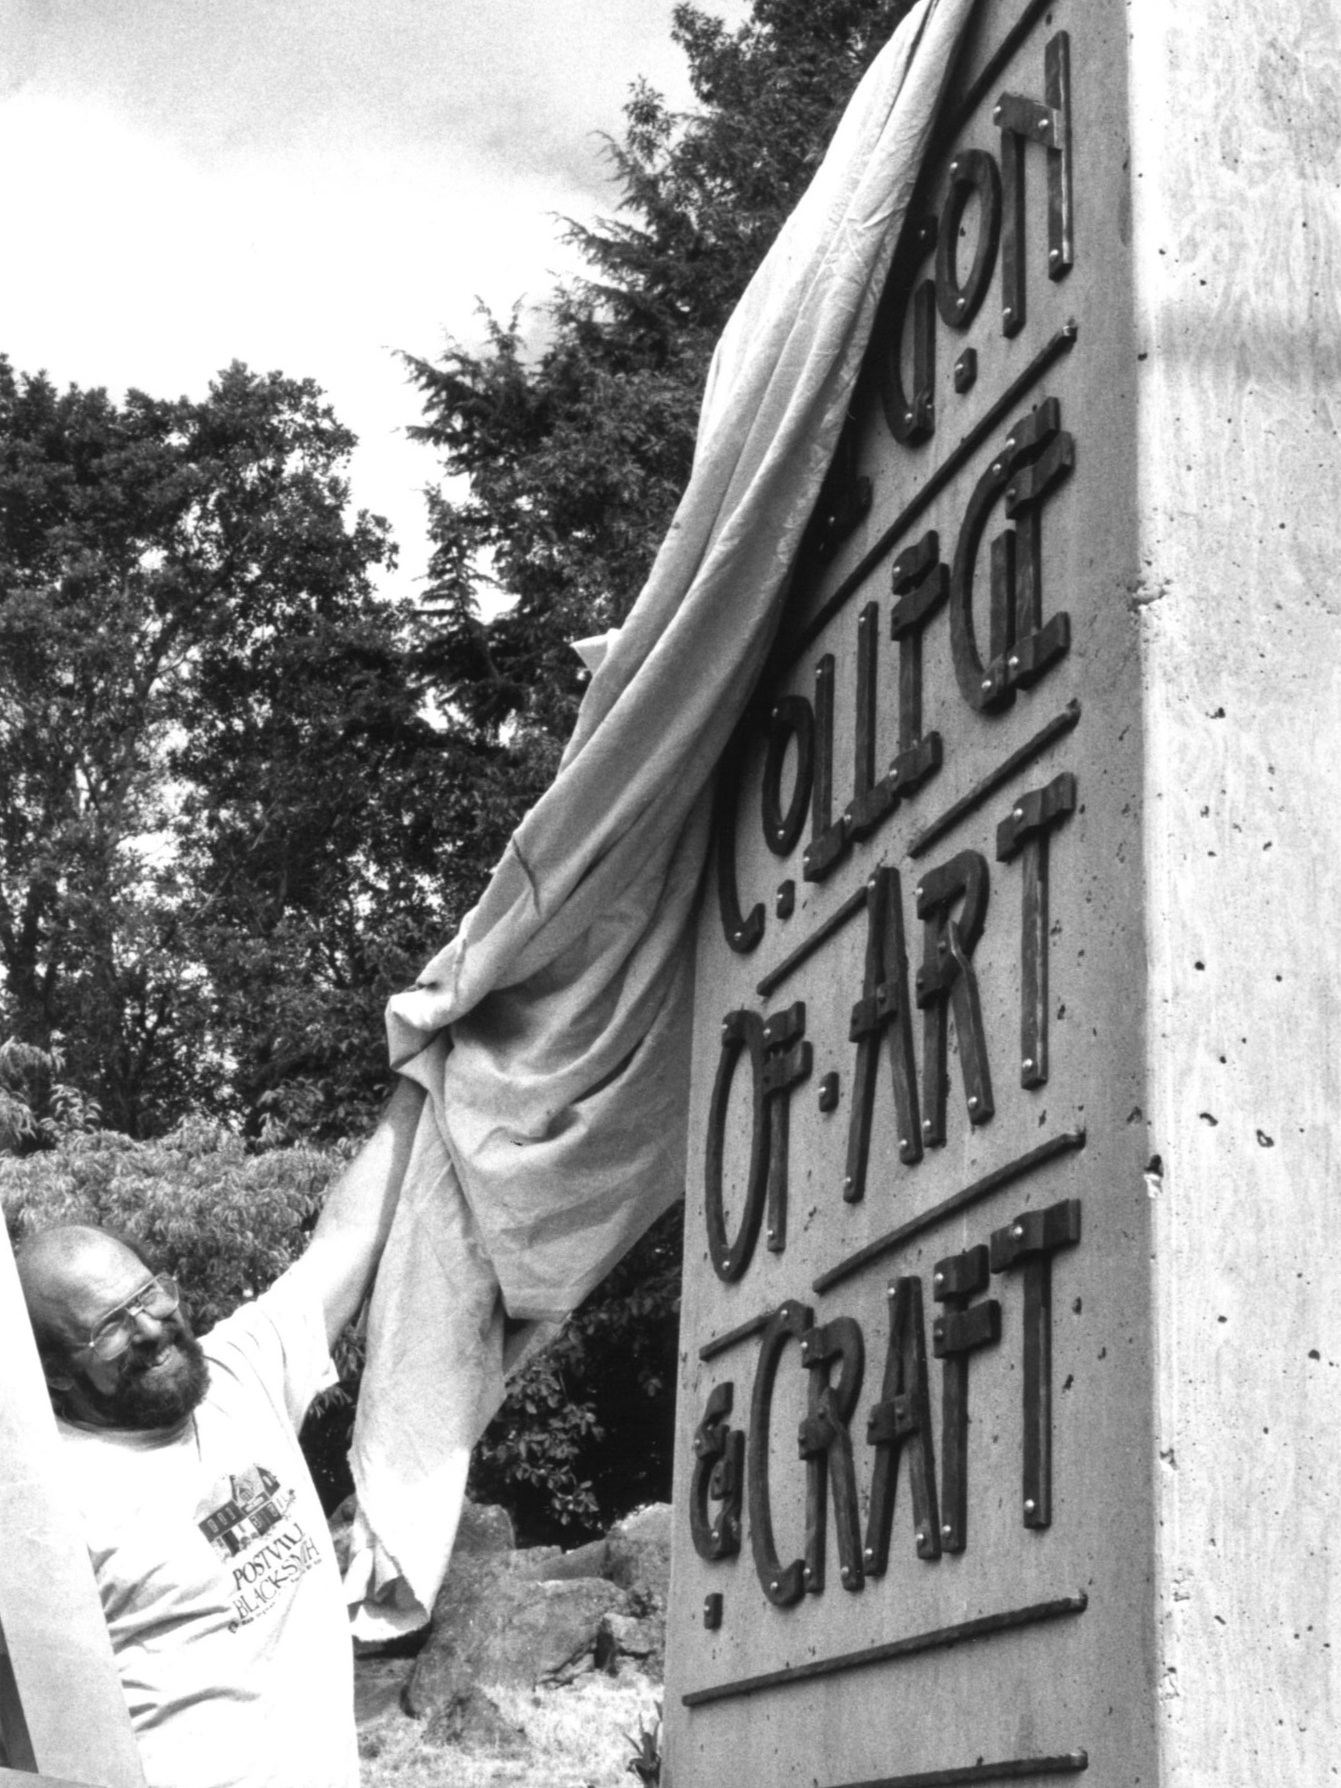 Fire Mountain Forge artist Darryl Nelson installs the new OCAC sign on Barnes Road, September 1996. (OCAC / Heather Watkins)